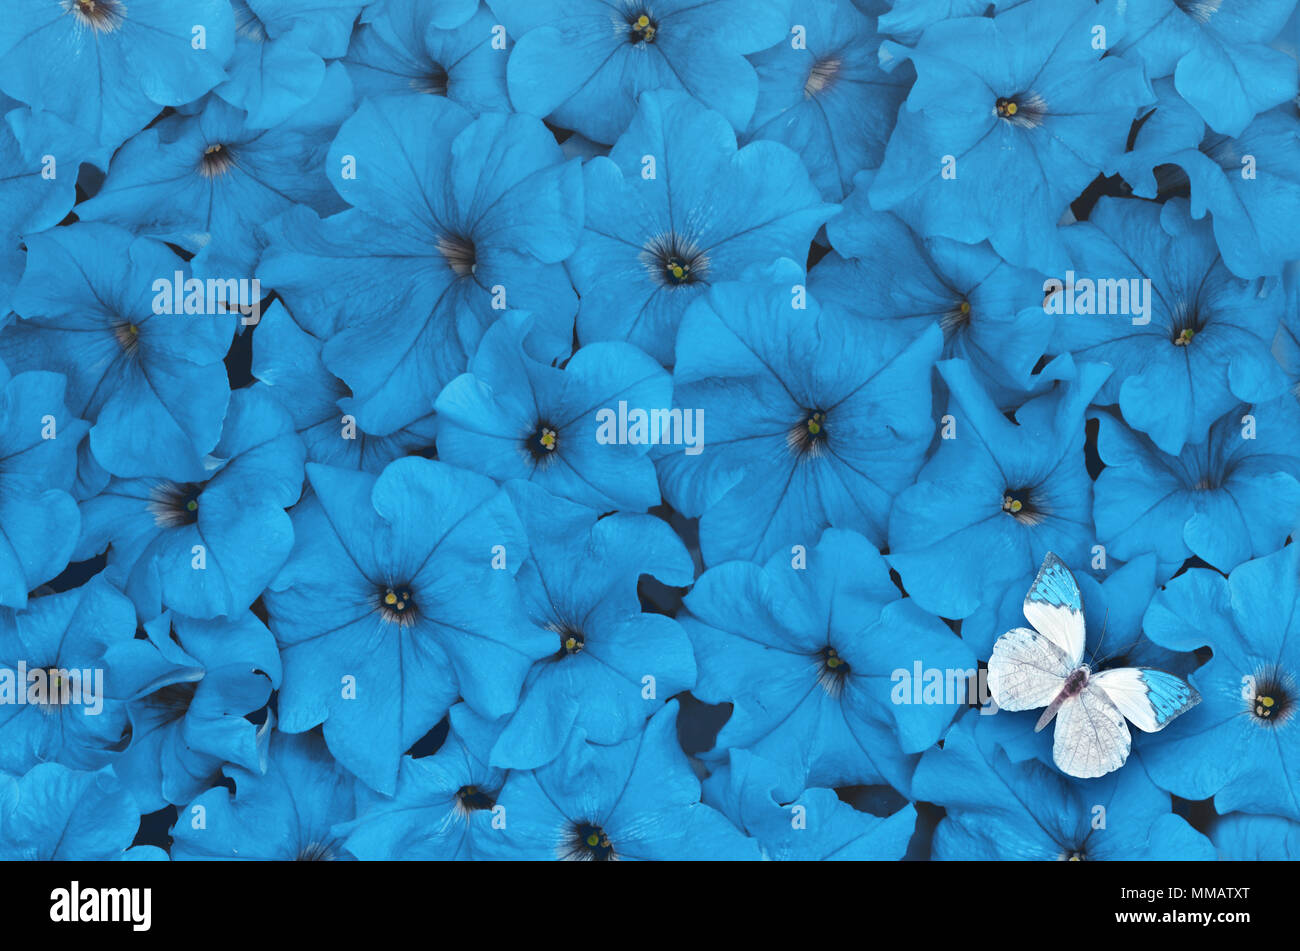 Creative layout made of blue flowers with white butterfly flat lay creative layout made of blue flowers with white butterfly flat lay nature concept izmirmasajfo